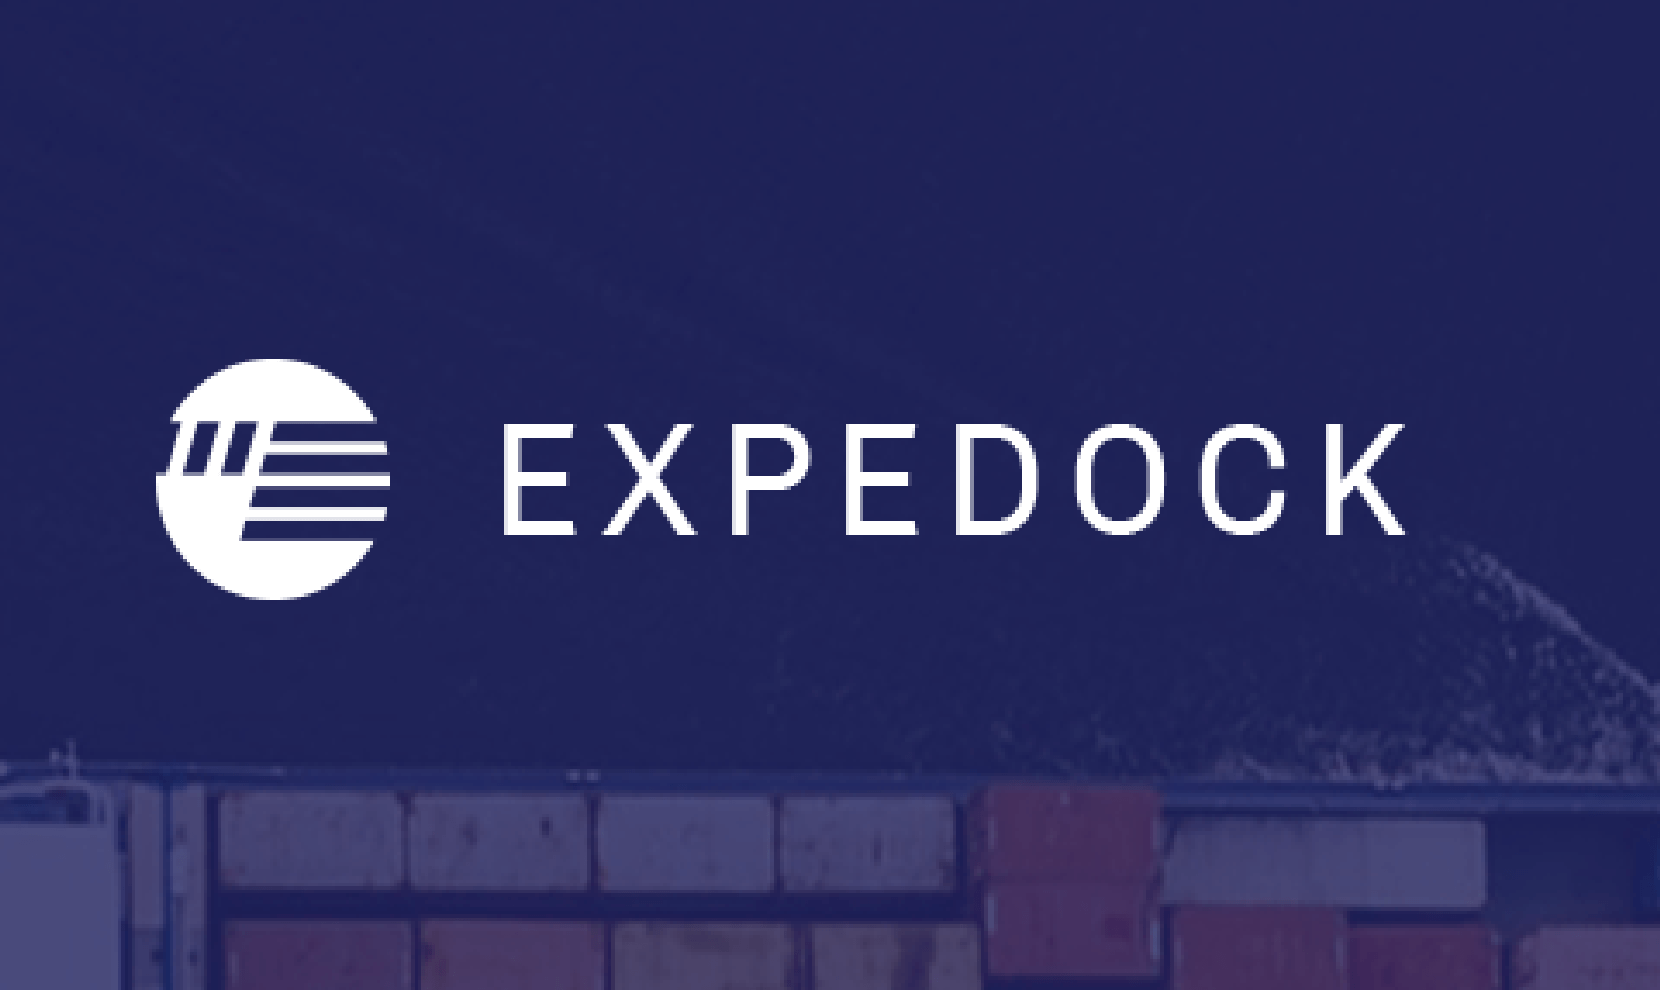 filipino-founded-ai-tech-startup-expedock-raises-4-million-for-global-expansion